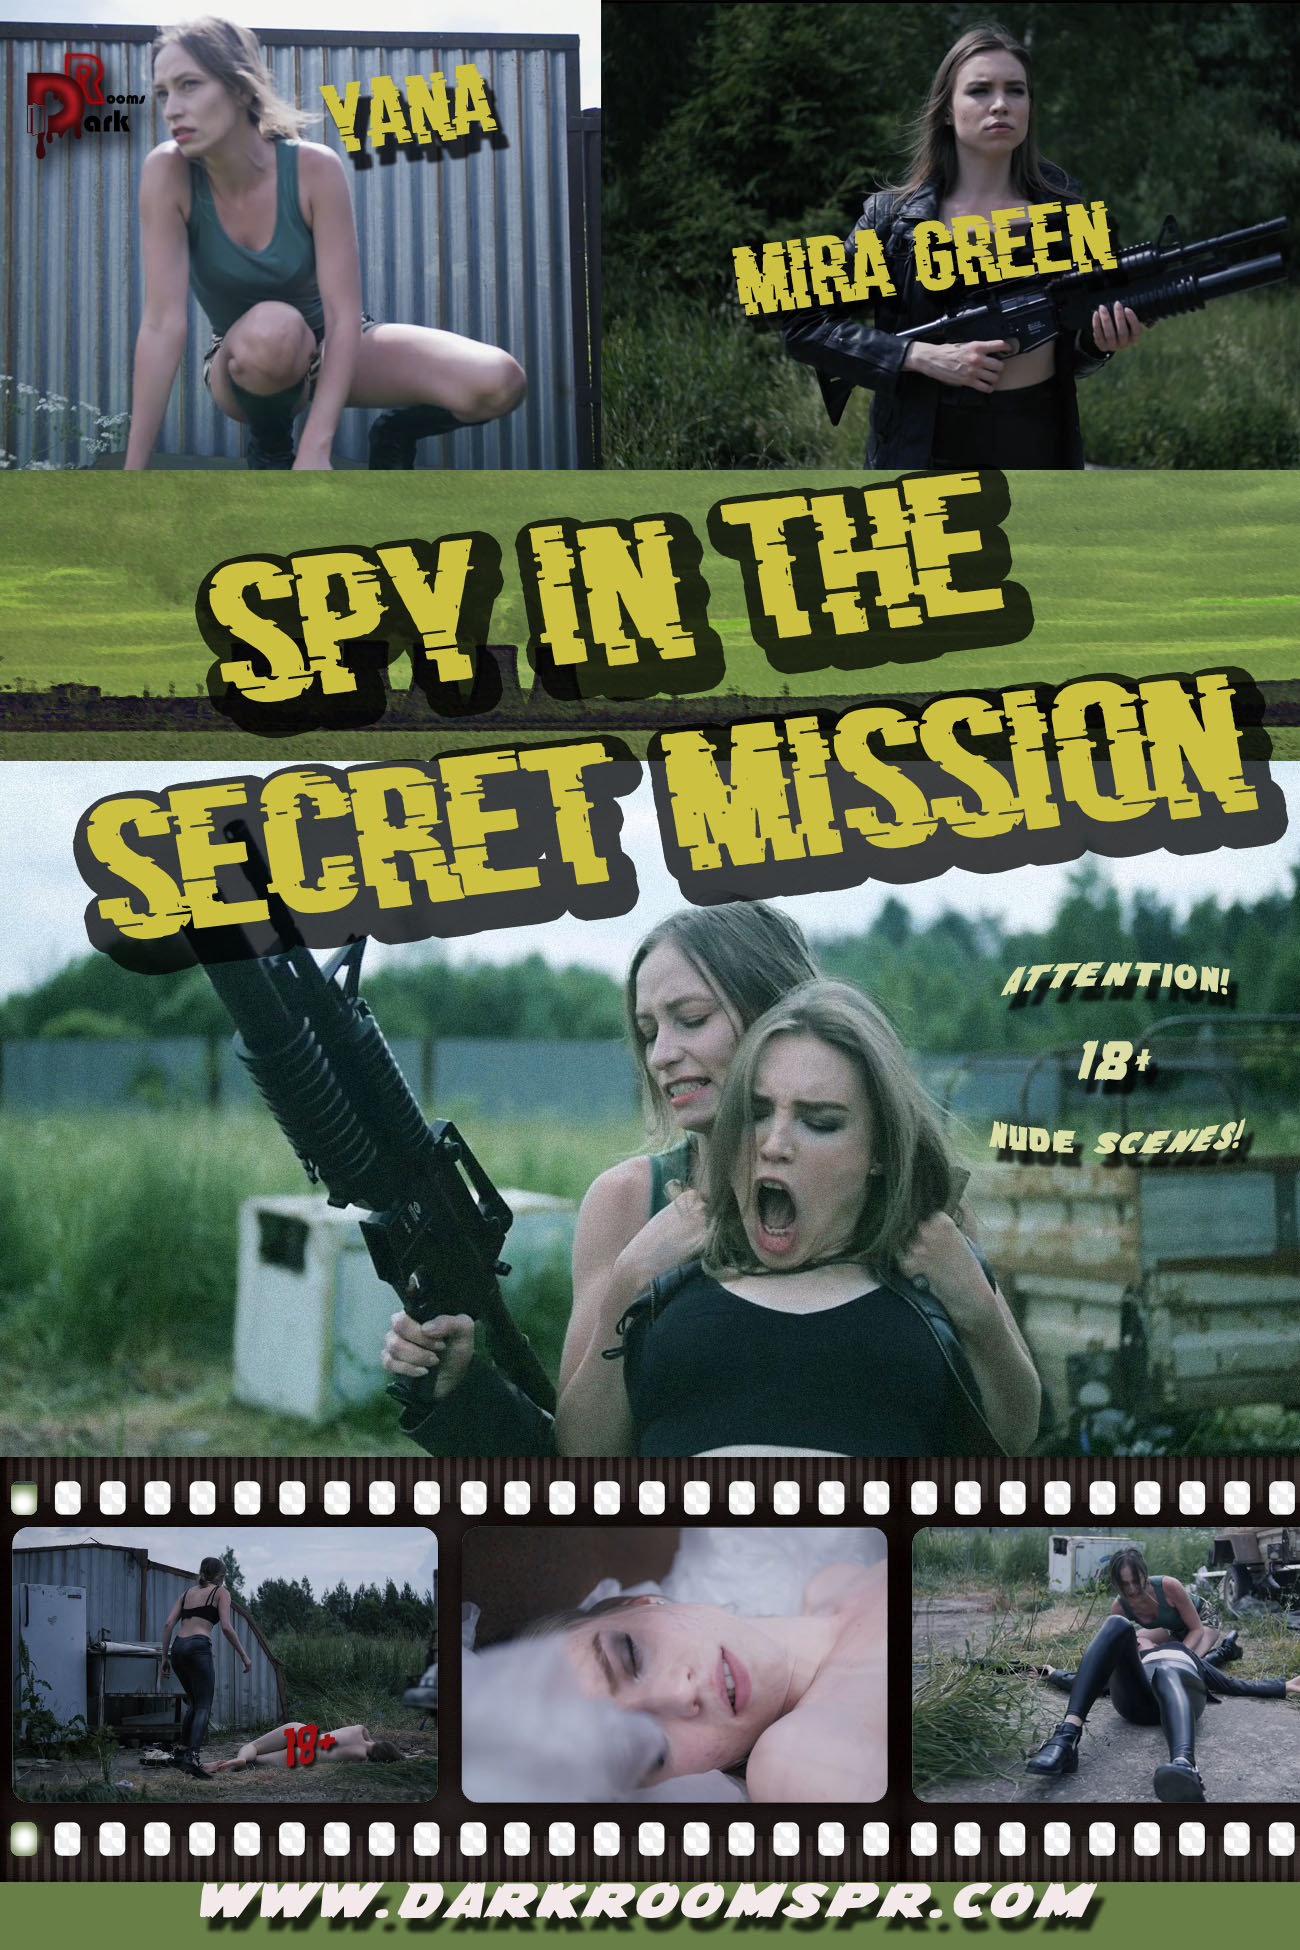 SPY IN THE SECRET MISSION